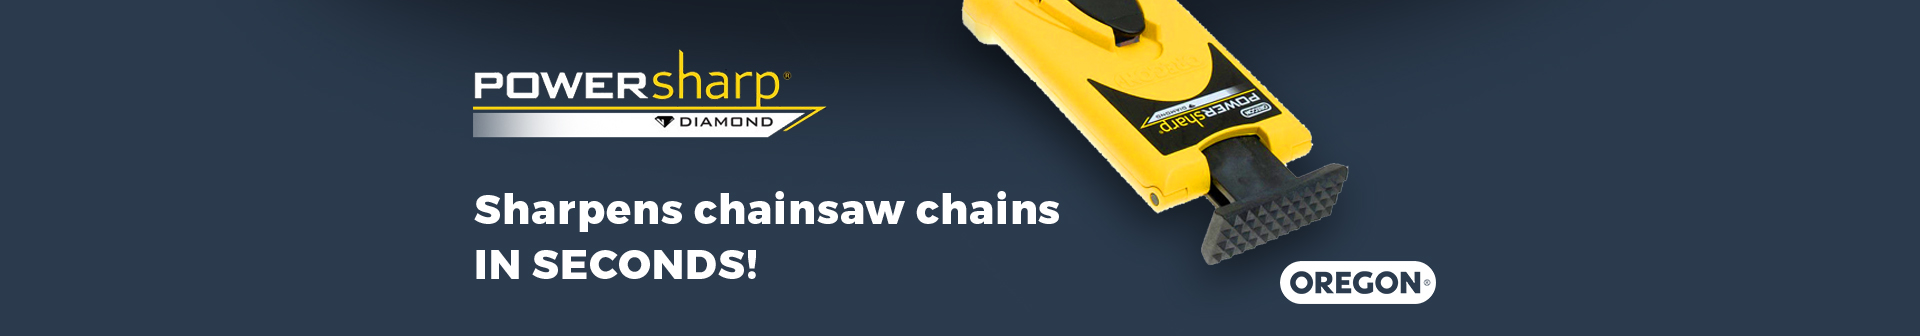 Power Sharp - Shapens Chainsaw Chains in Seconds!